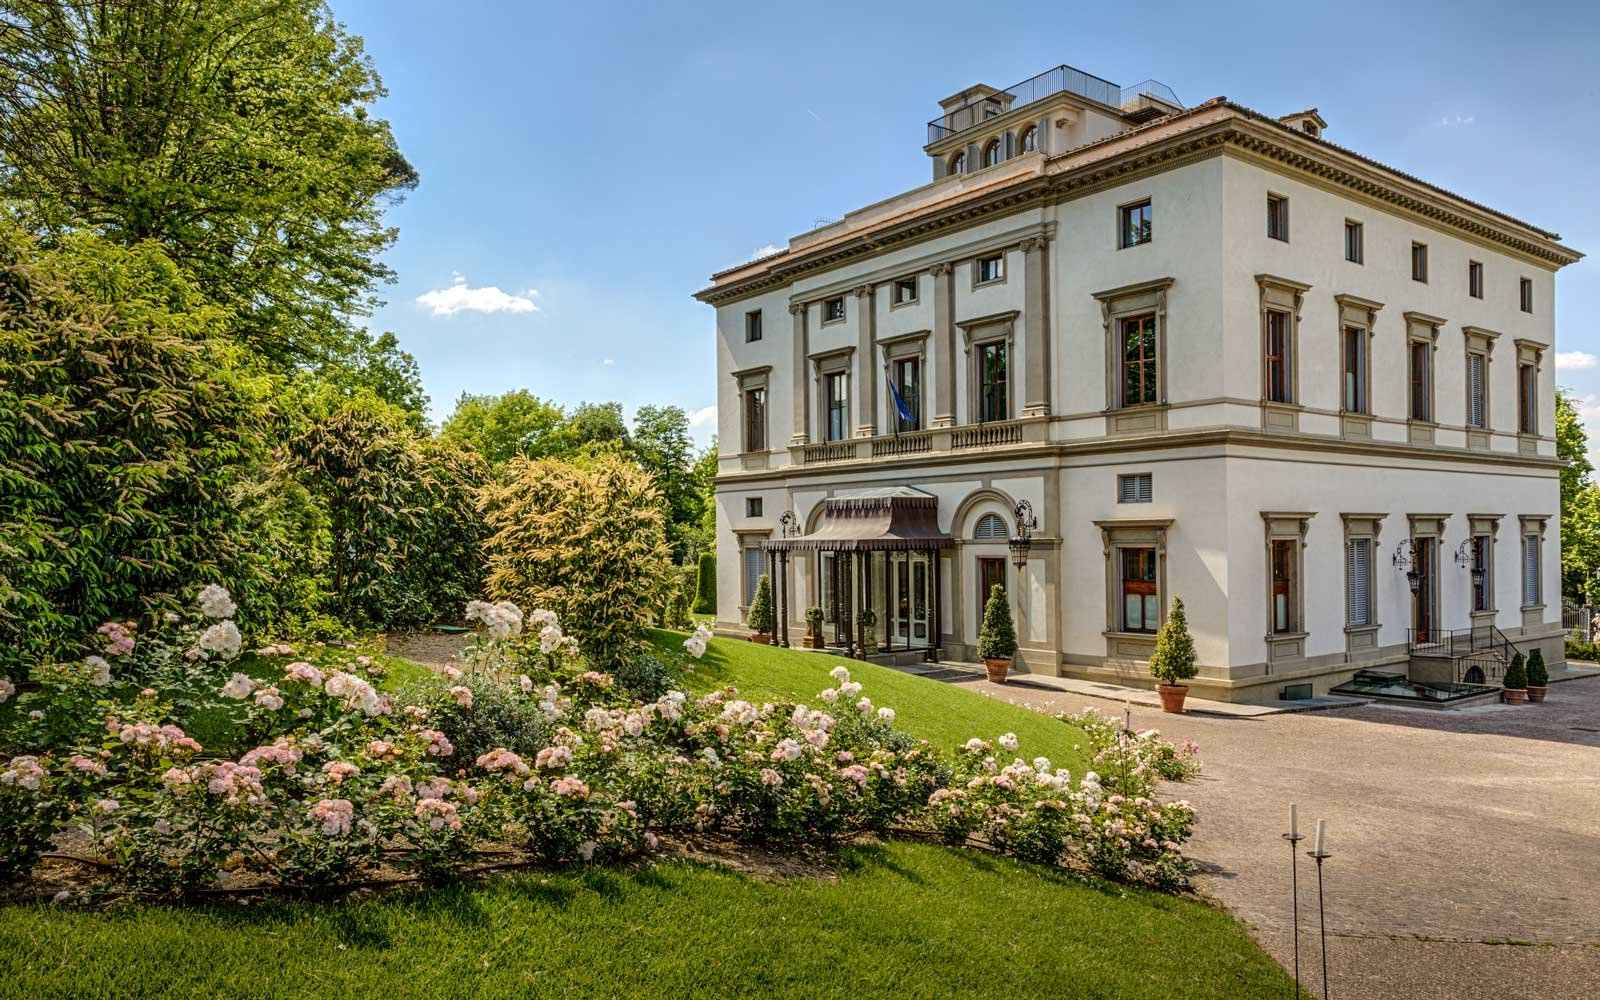 Top Romantic Hotels: Villa Cora, Florence, Italy